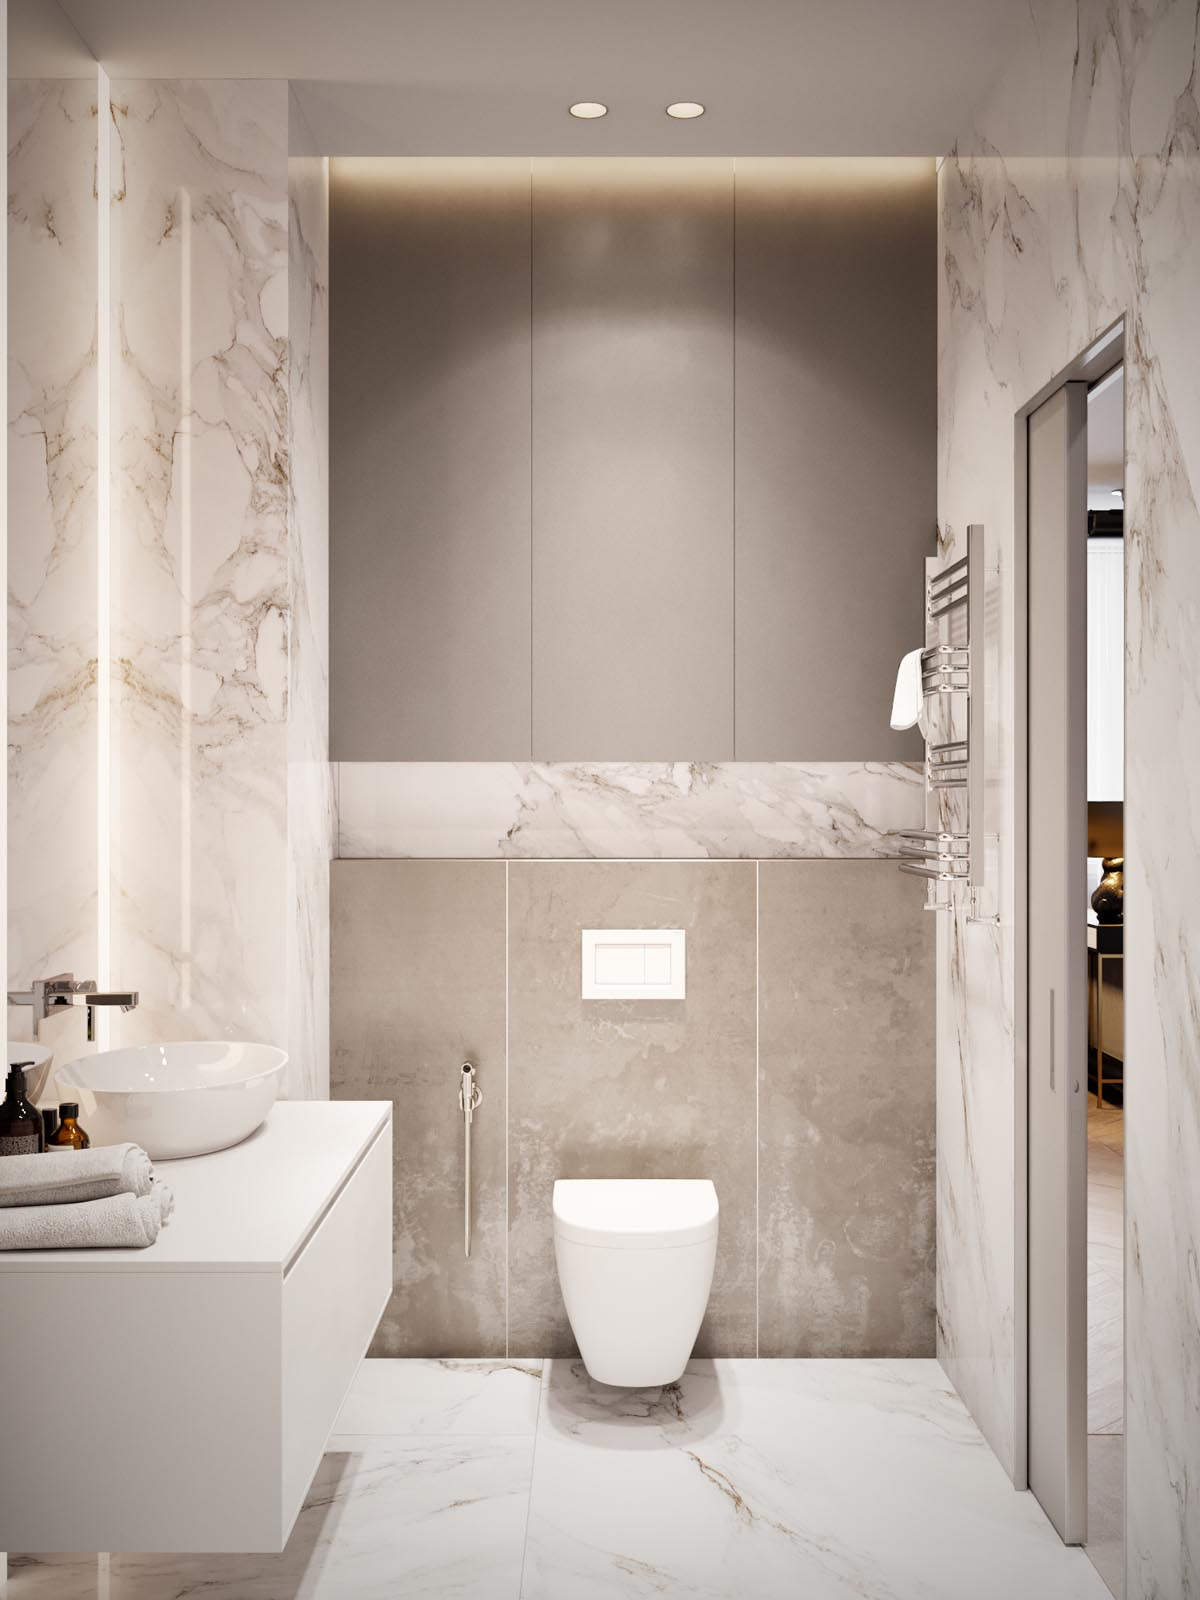 Home design under 60 square meters 3 examples that incorporate luxury in small spaces - Pictures of bathroom designs ...